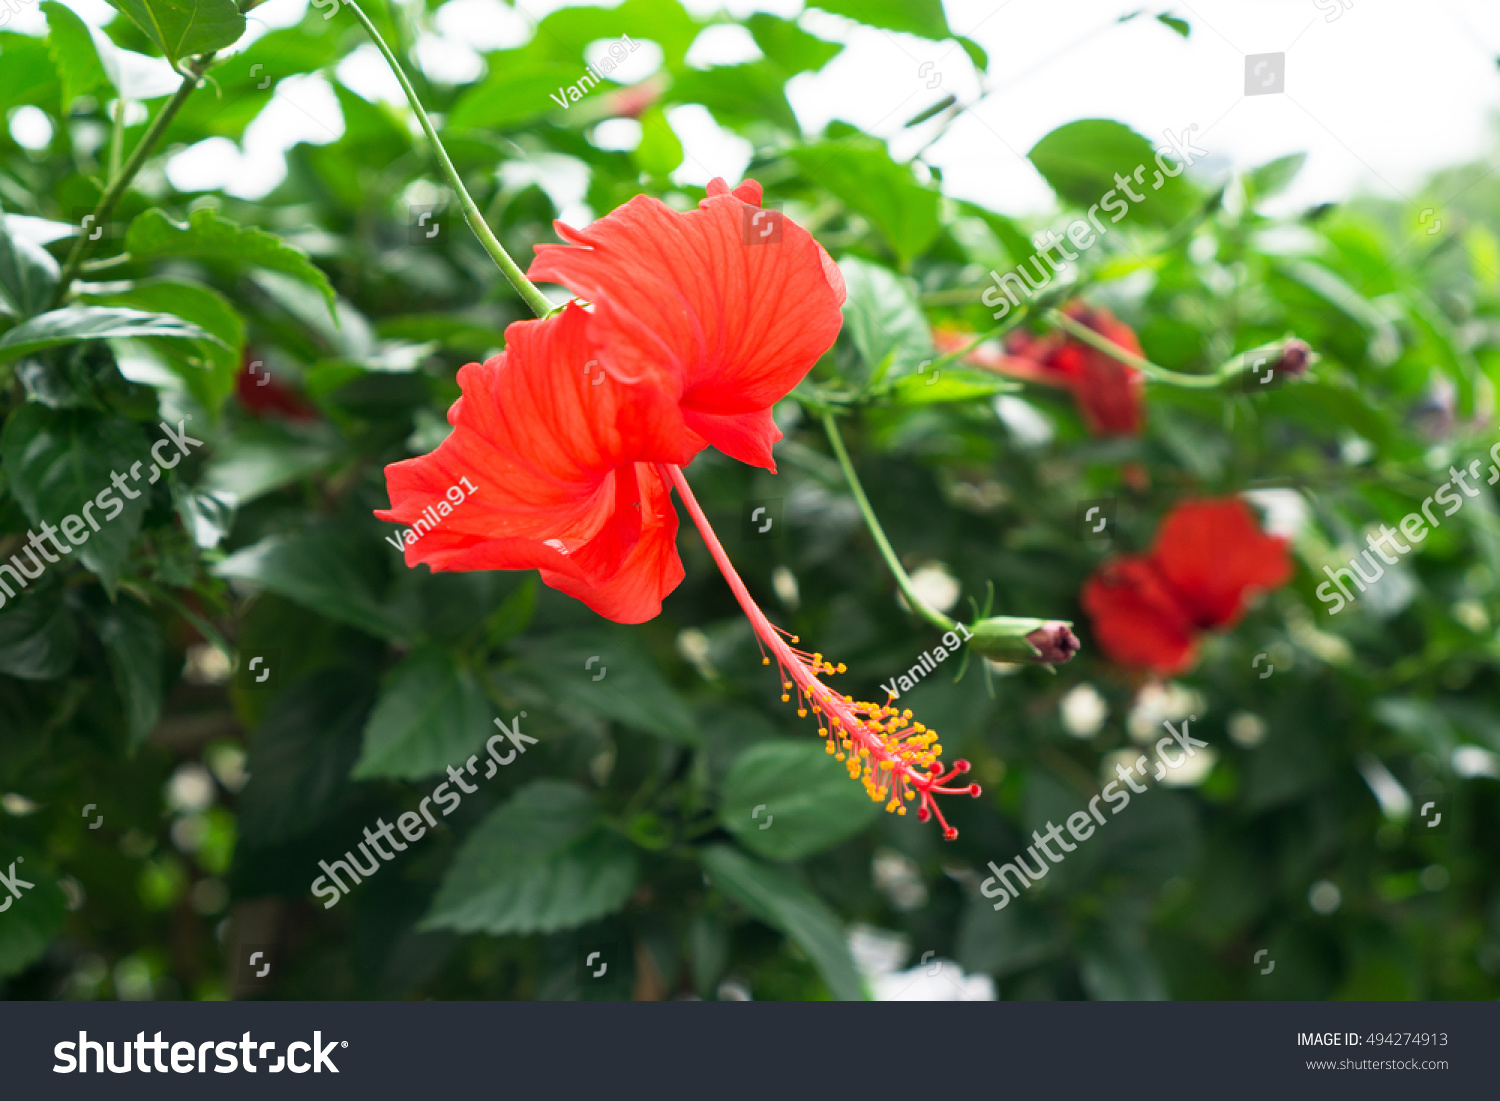 Red chinese rose shoe flower flower stock photo edit now shutterstock red chinese rose shoe flower or a flower of red hibiscus with green leaves izmirmasajfo